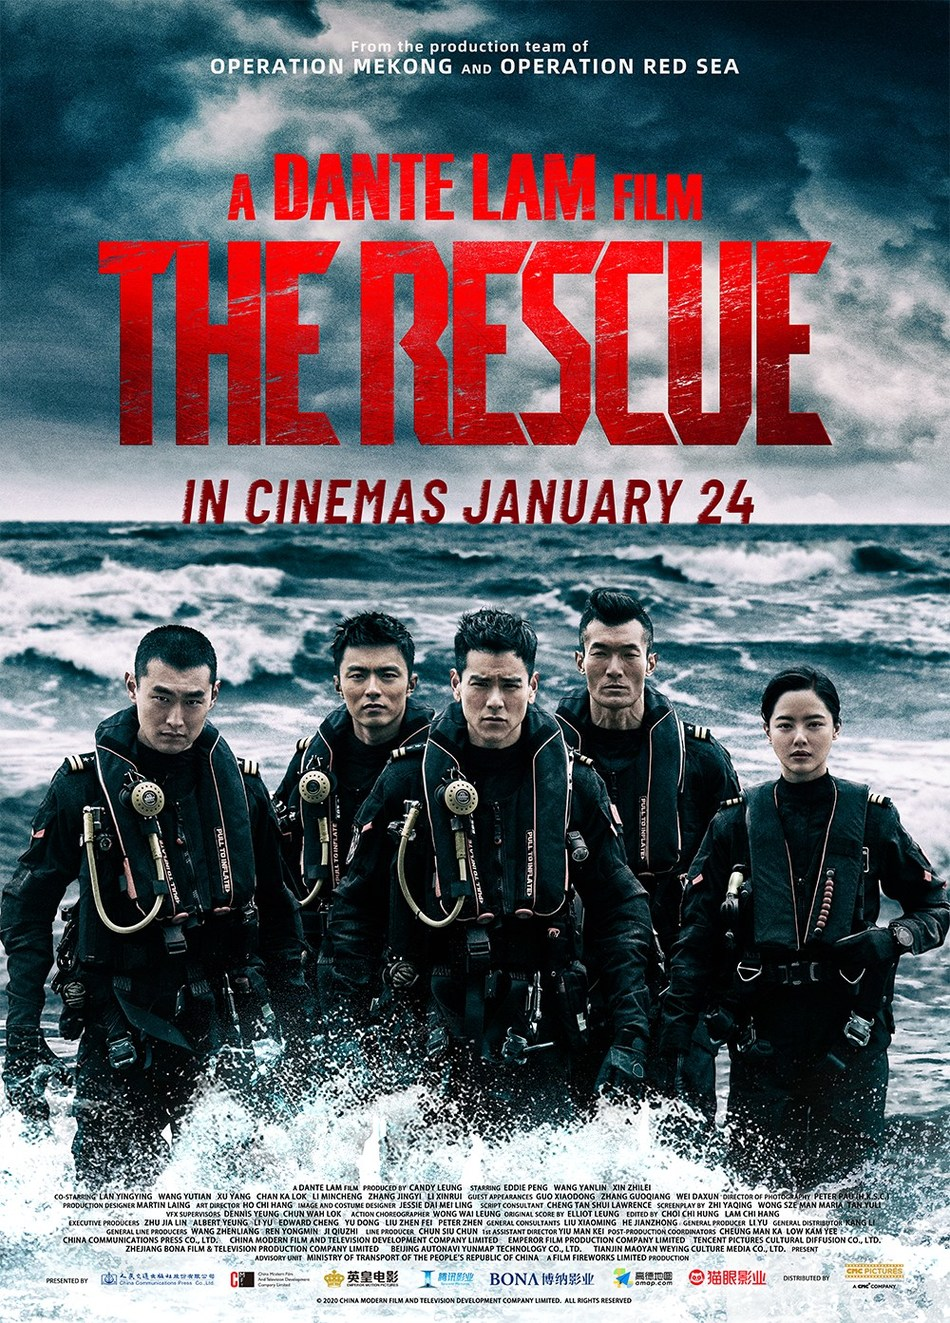 CMC Pictures' THE RESCUE directed by Dante Lam; in cinemas January 24